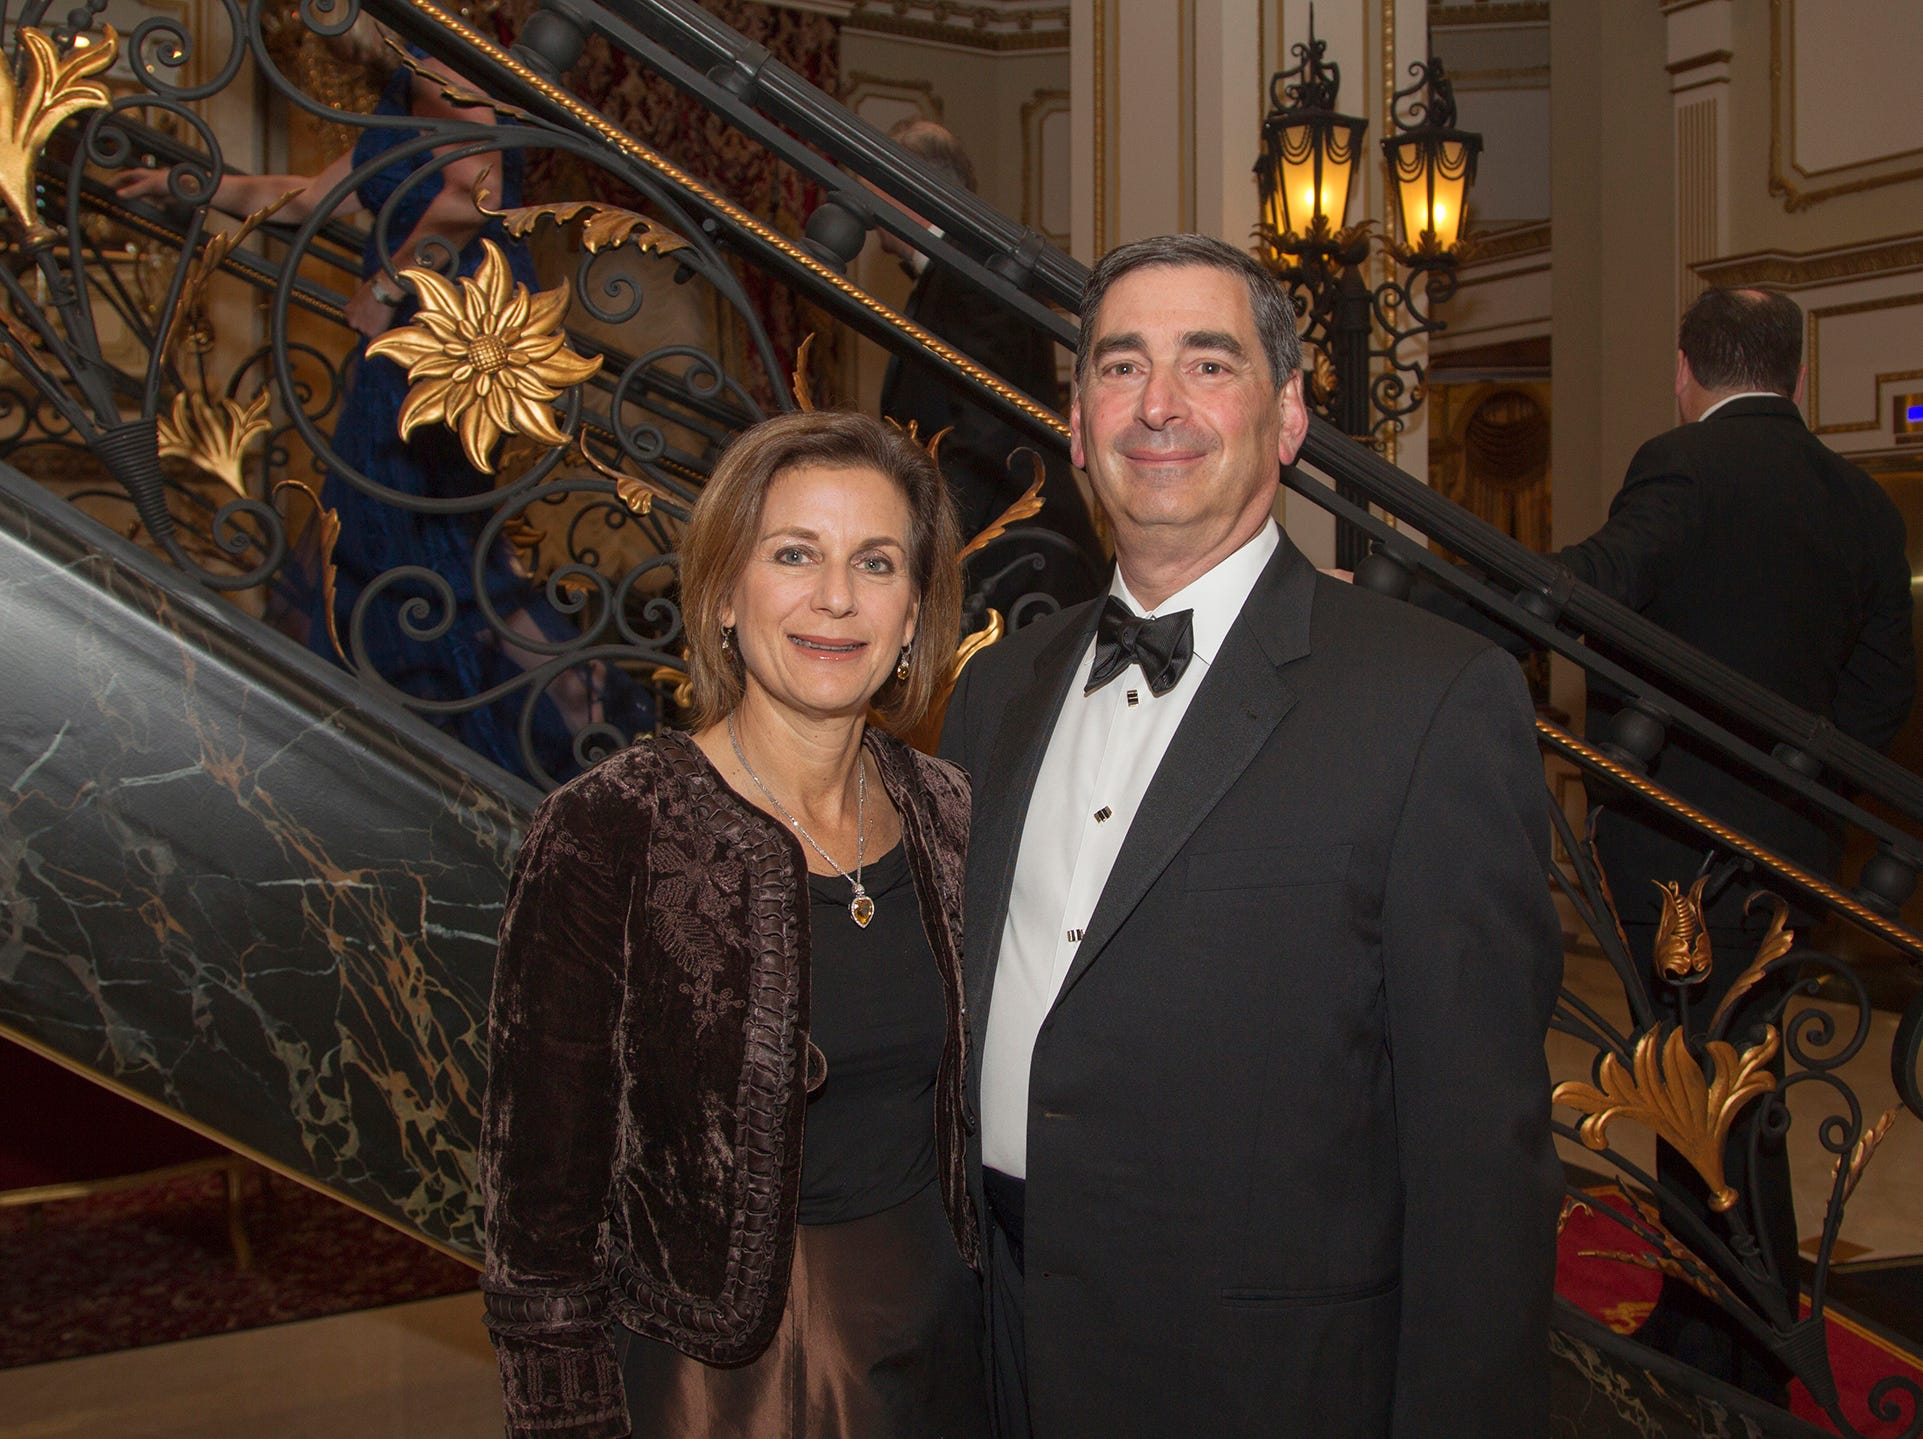 Gita and Jeff Magnes. The 72nd Annual Valley Ball gala at The Legacy Castle in Pompton Plains. 11/16/2018